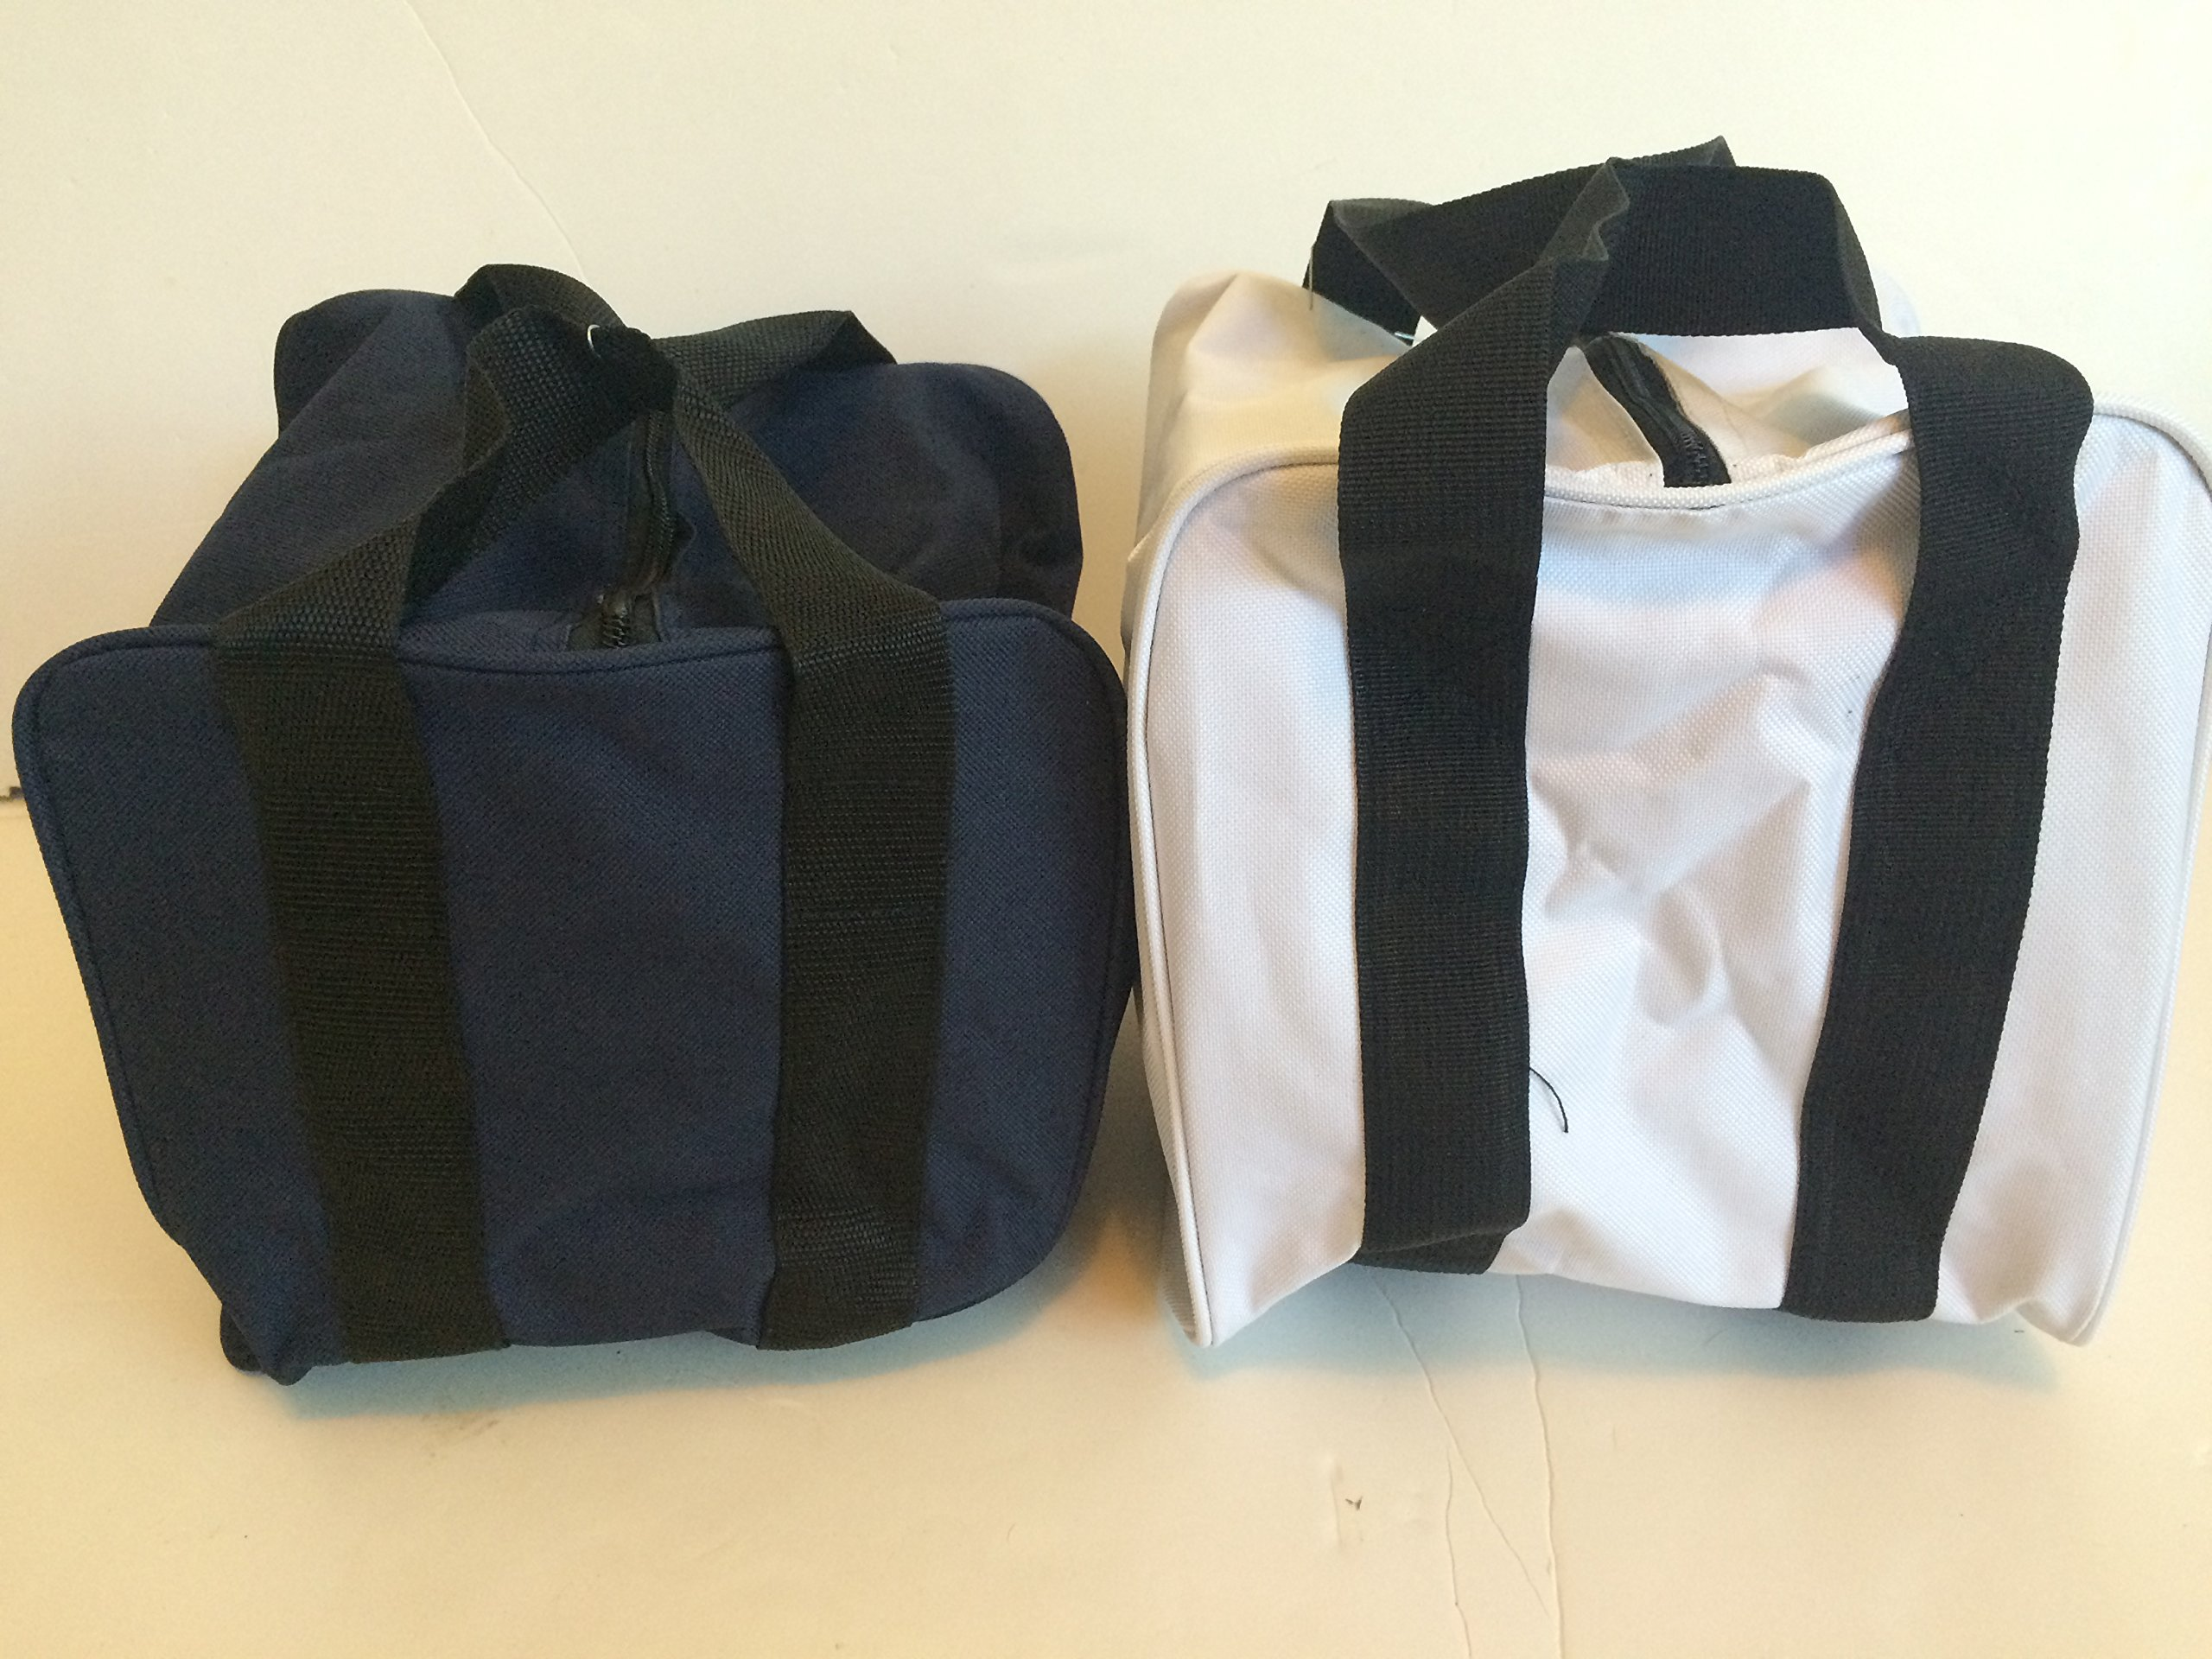 Unique Package - Pack of 2 Extra Heavy Duty Nylon Bocce Bags - Blue with Black Handles and White with Black Handles